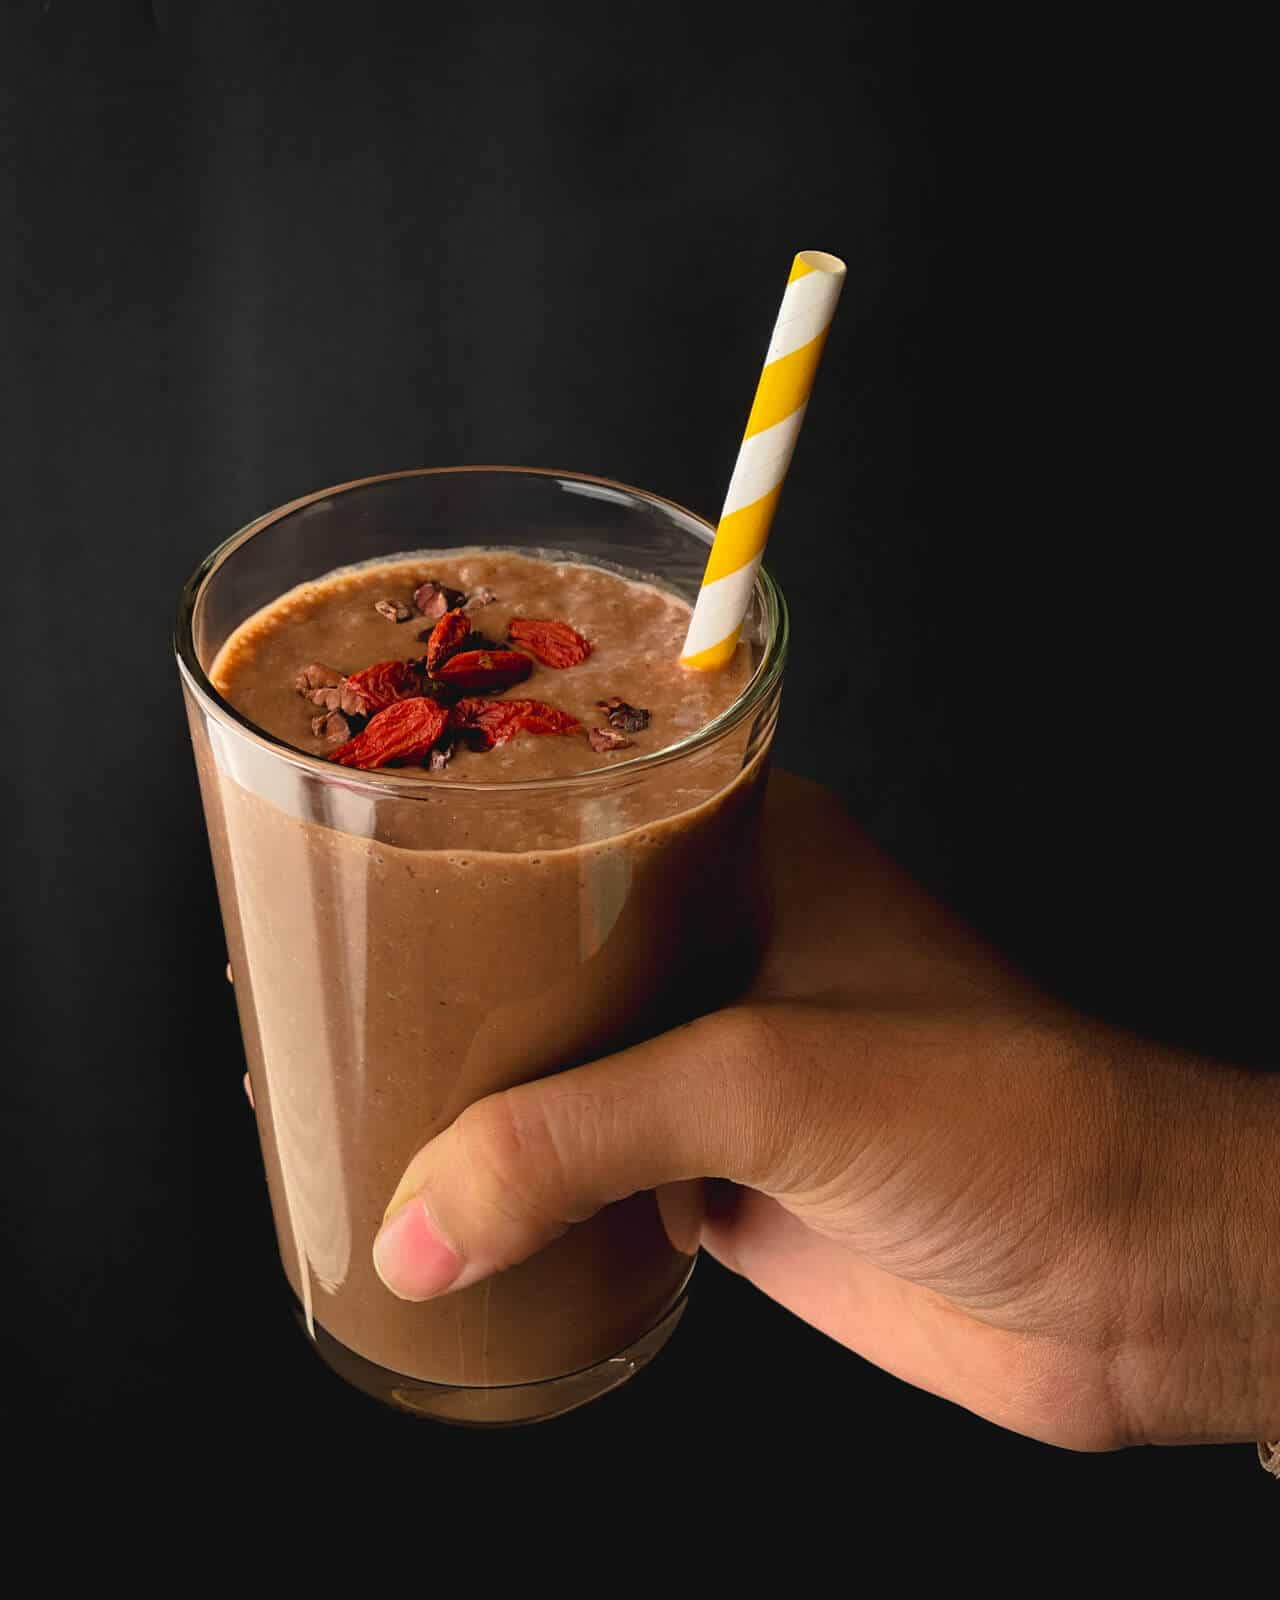 A hand holding a banana chocolate smoothie with goji berries on top and a yellow and white straw.